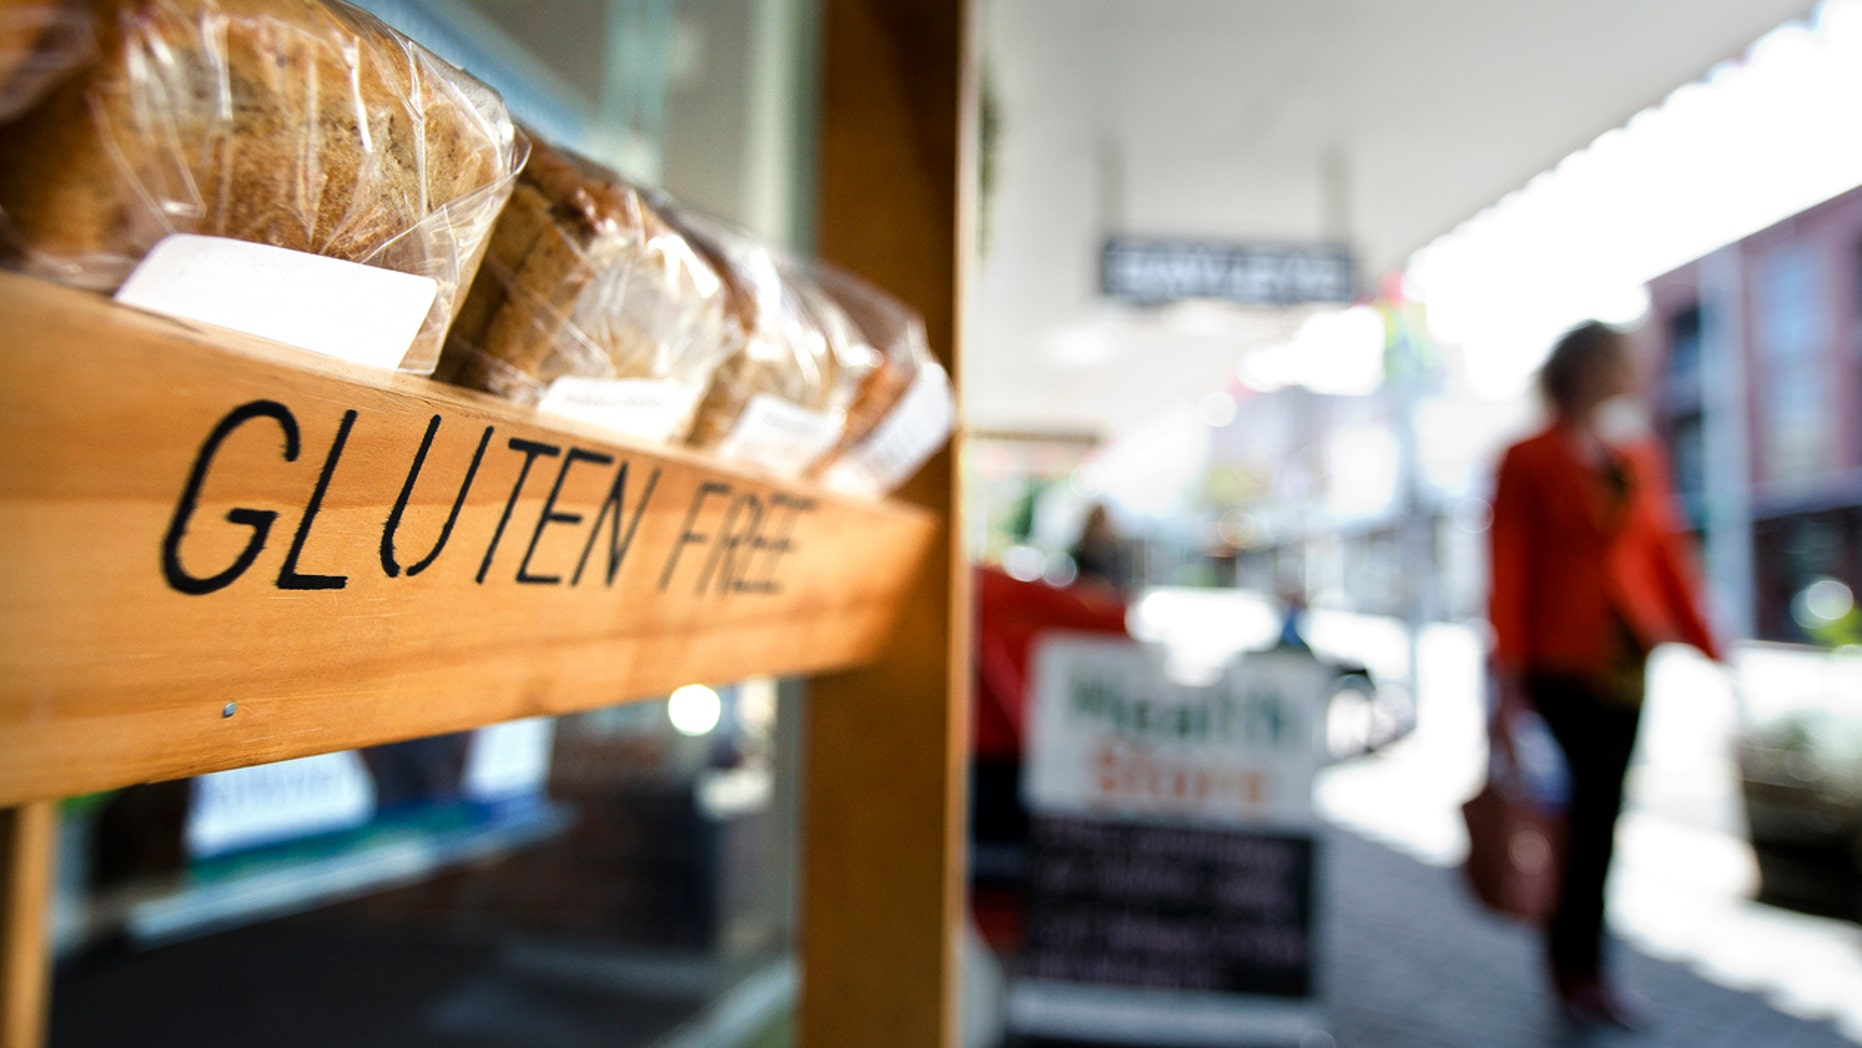 Auckland, New Zealand - October 09, 2013: Woman pass by a Gluten free grocer shop on October 09, 2013. Gluten-free food is normally seen as a diet for celiac disease, nearly 1 out of every 133 people has celiac disease.